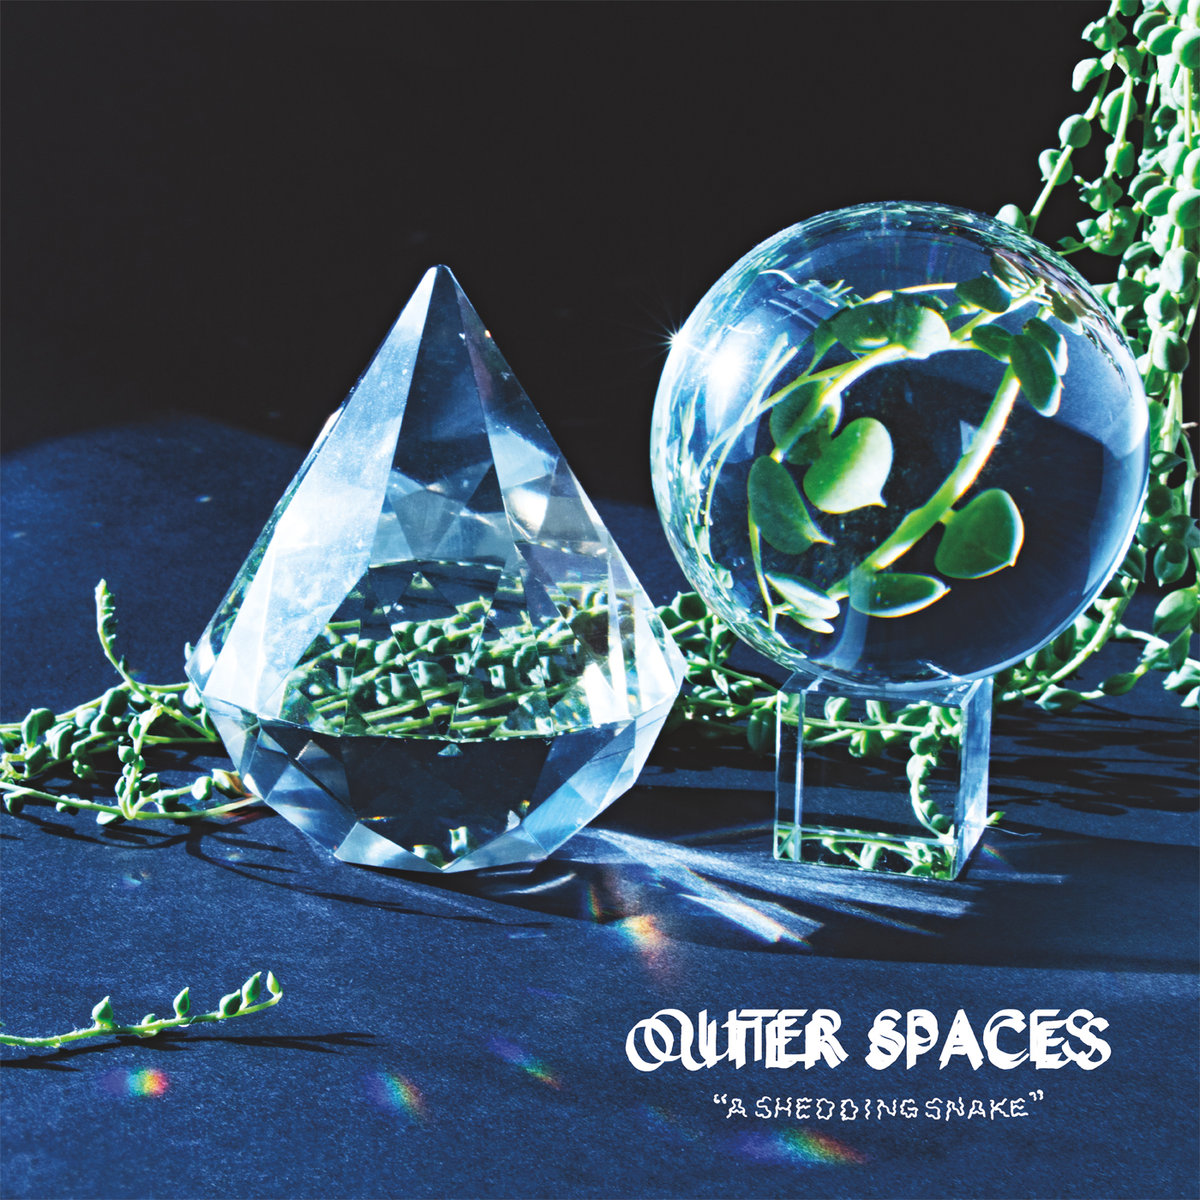 Outer Spaces - A Shedding Snake LP